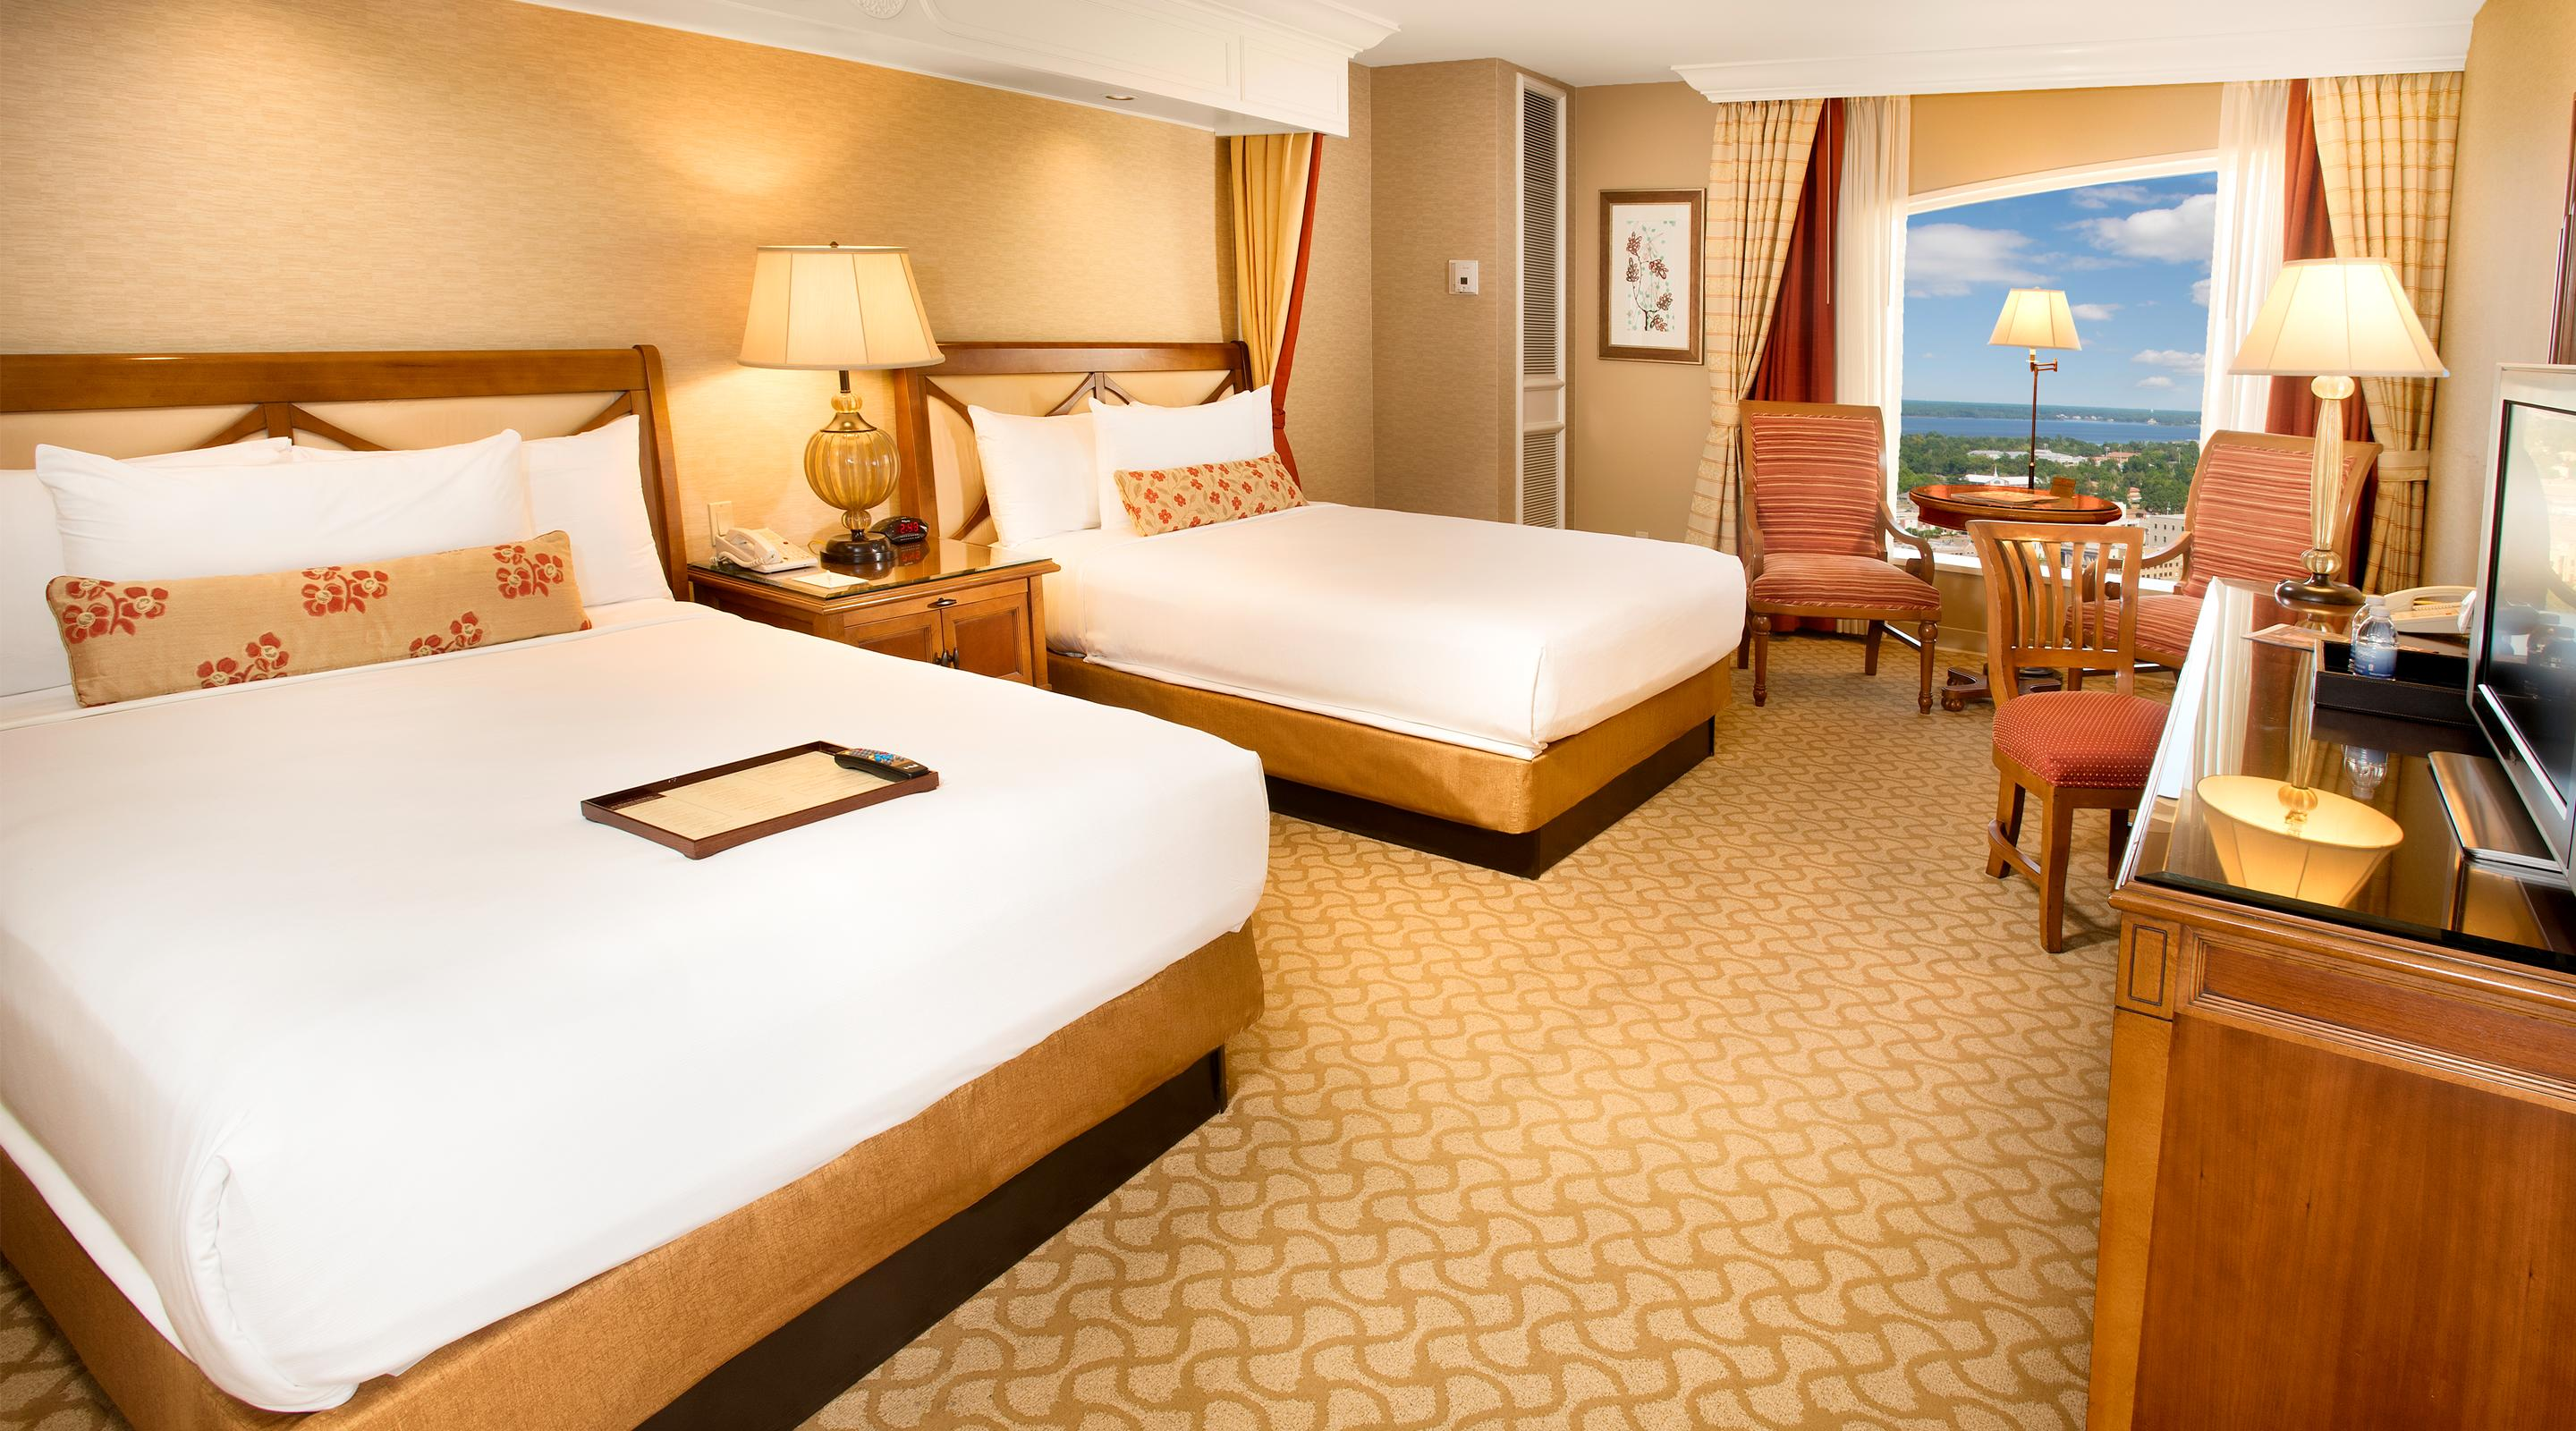 Deluxe Double room at Beau Rivage.